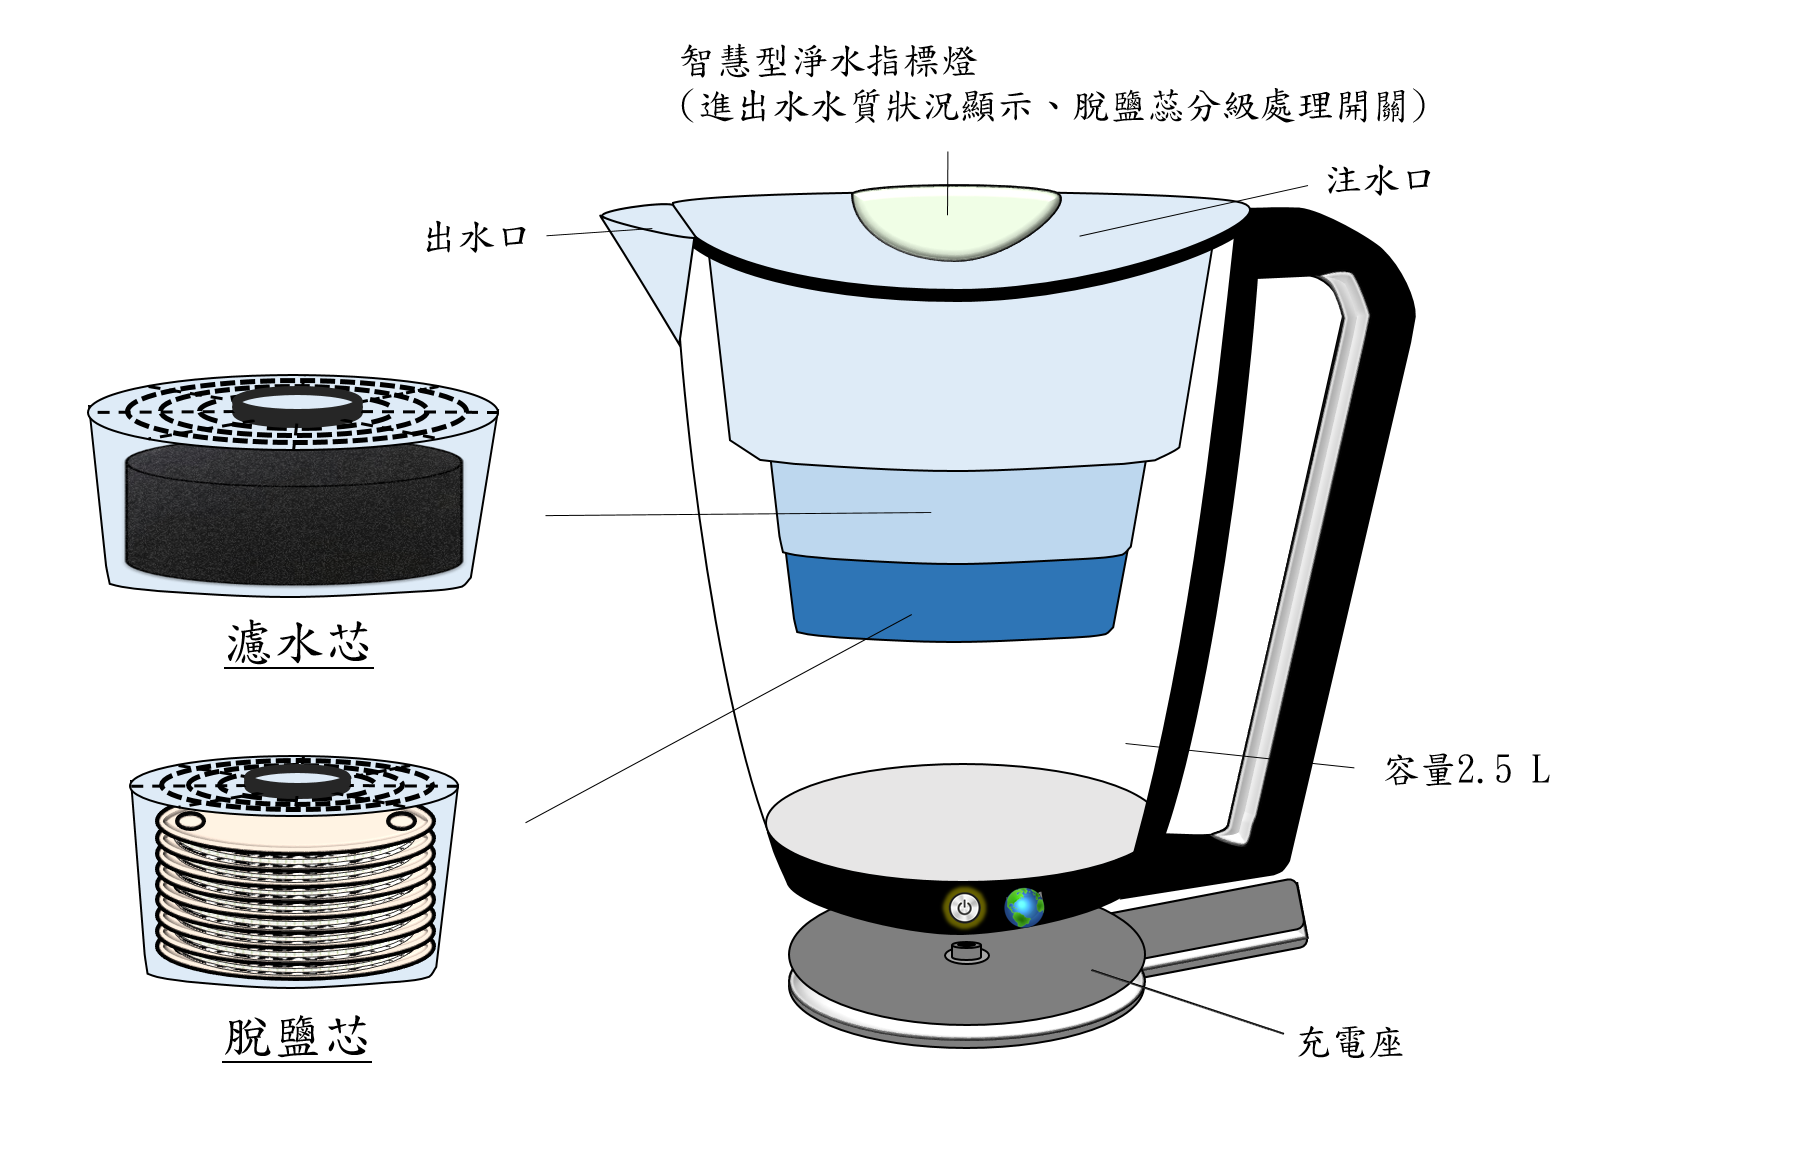 Multi-functional water softening filters